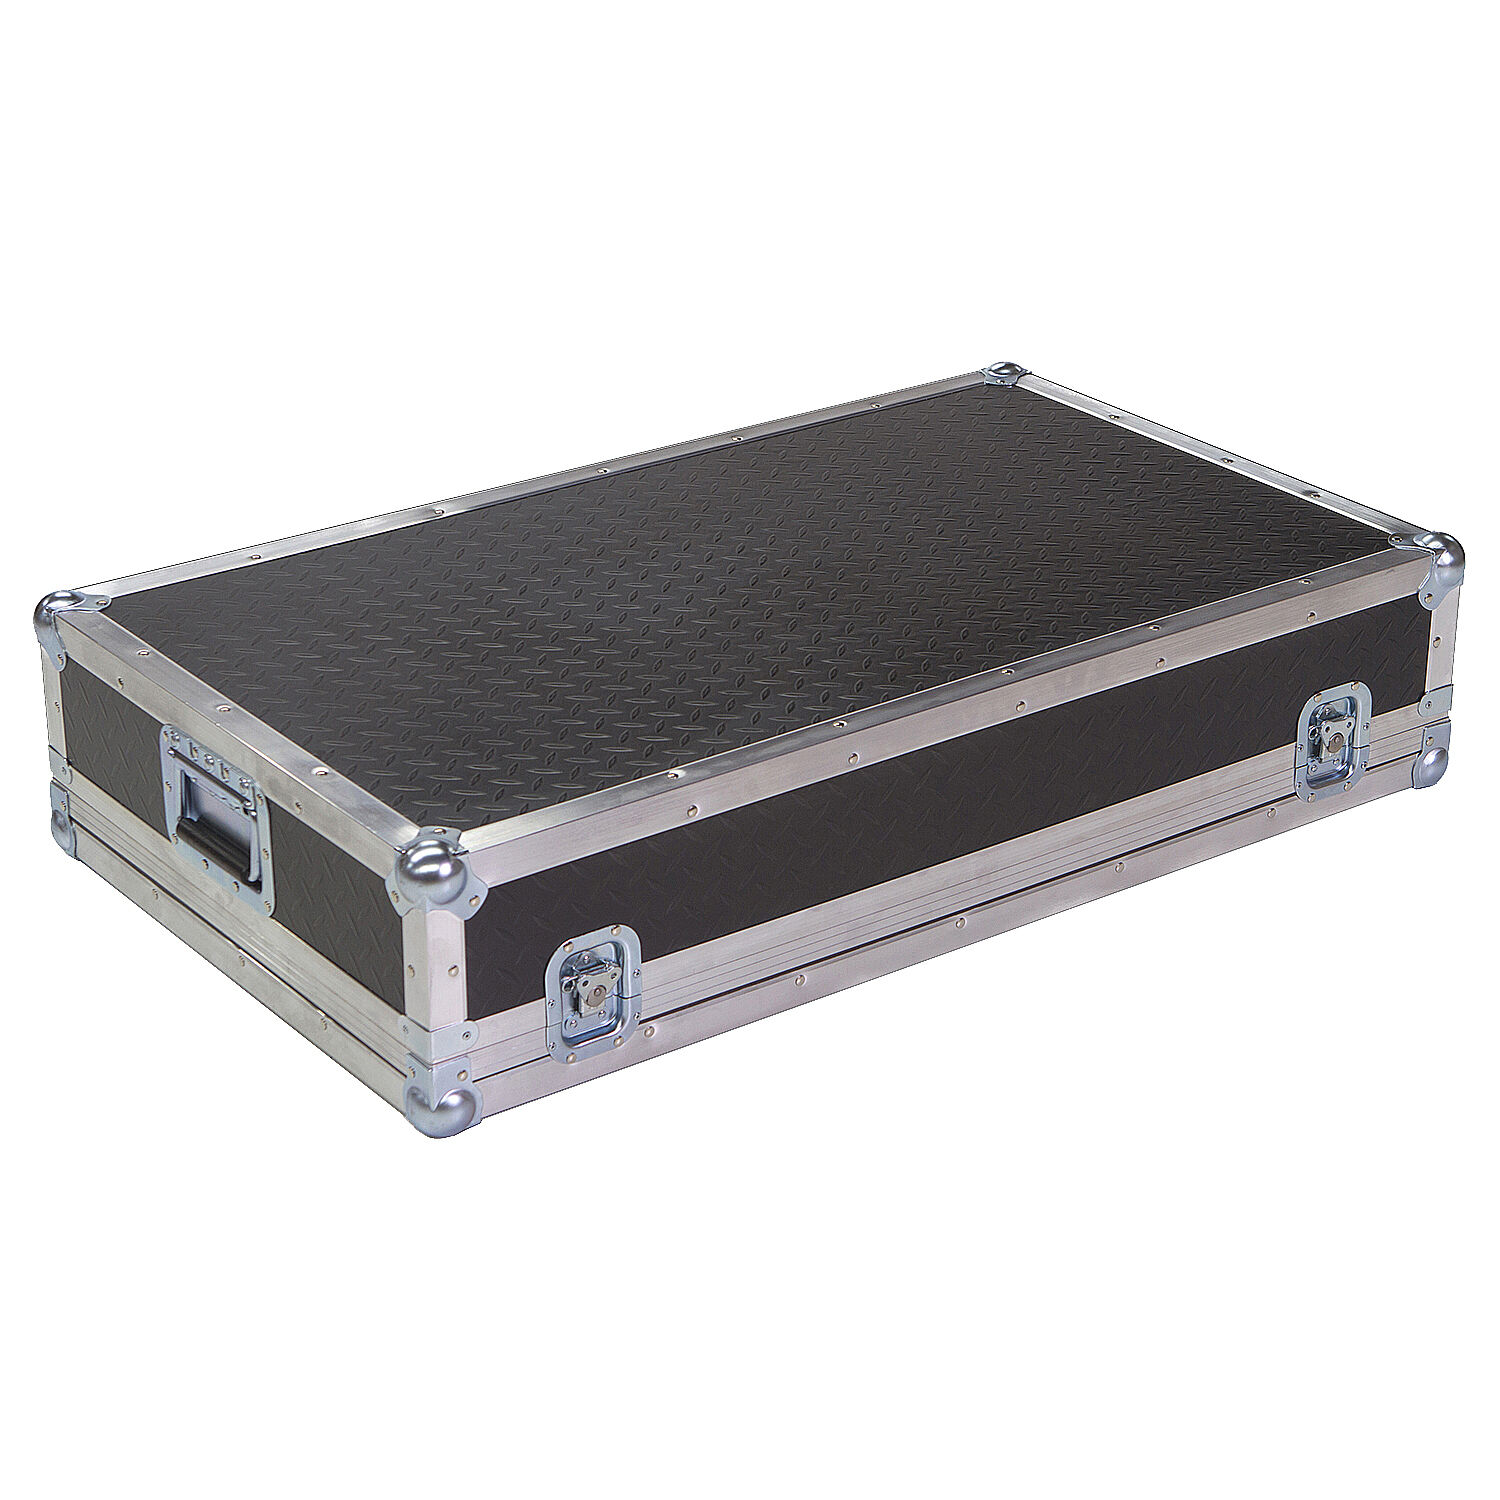 Diamond Plate Light Duty 1 4  ATA Case For SOUNDCRAFT LX7 32 CHANNEL Mixer